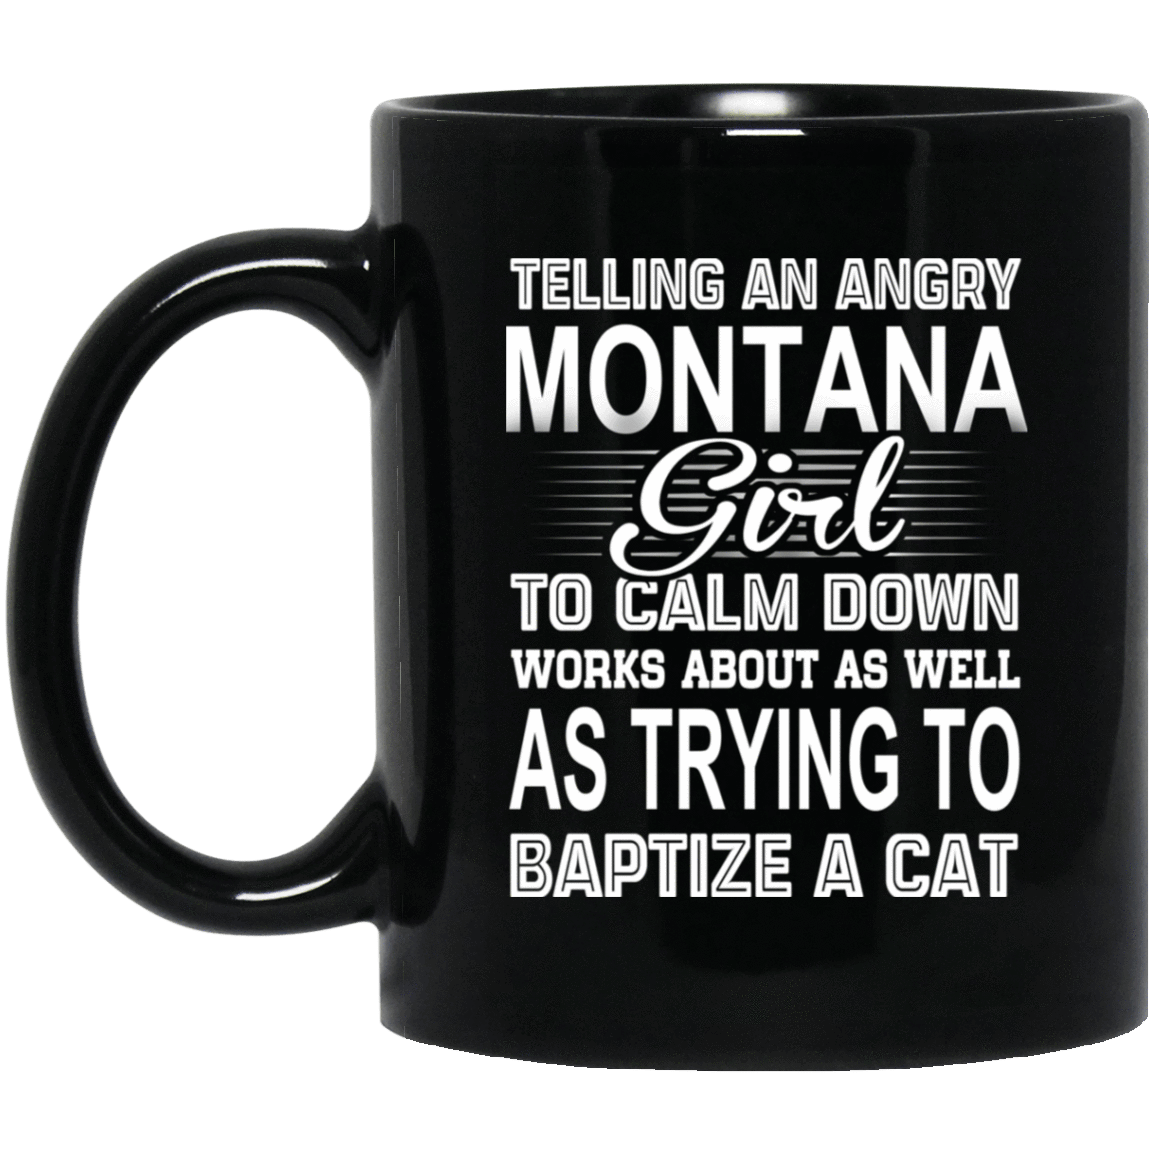 Telling An Angry Montana Girl To Calm Down Works About As Well As Trying To Baptize A Cat Mug 1065-10181-76151625-49307 - Tee Ript